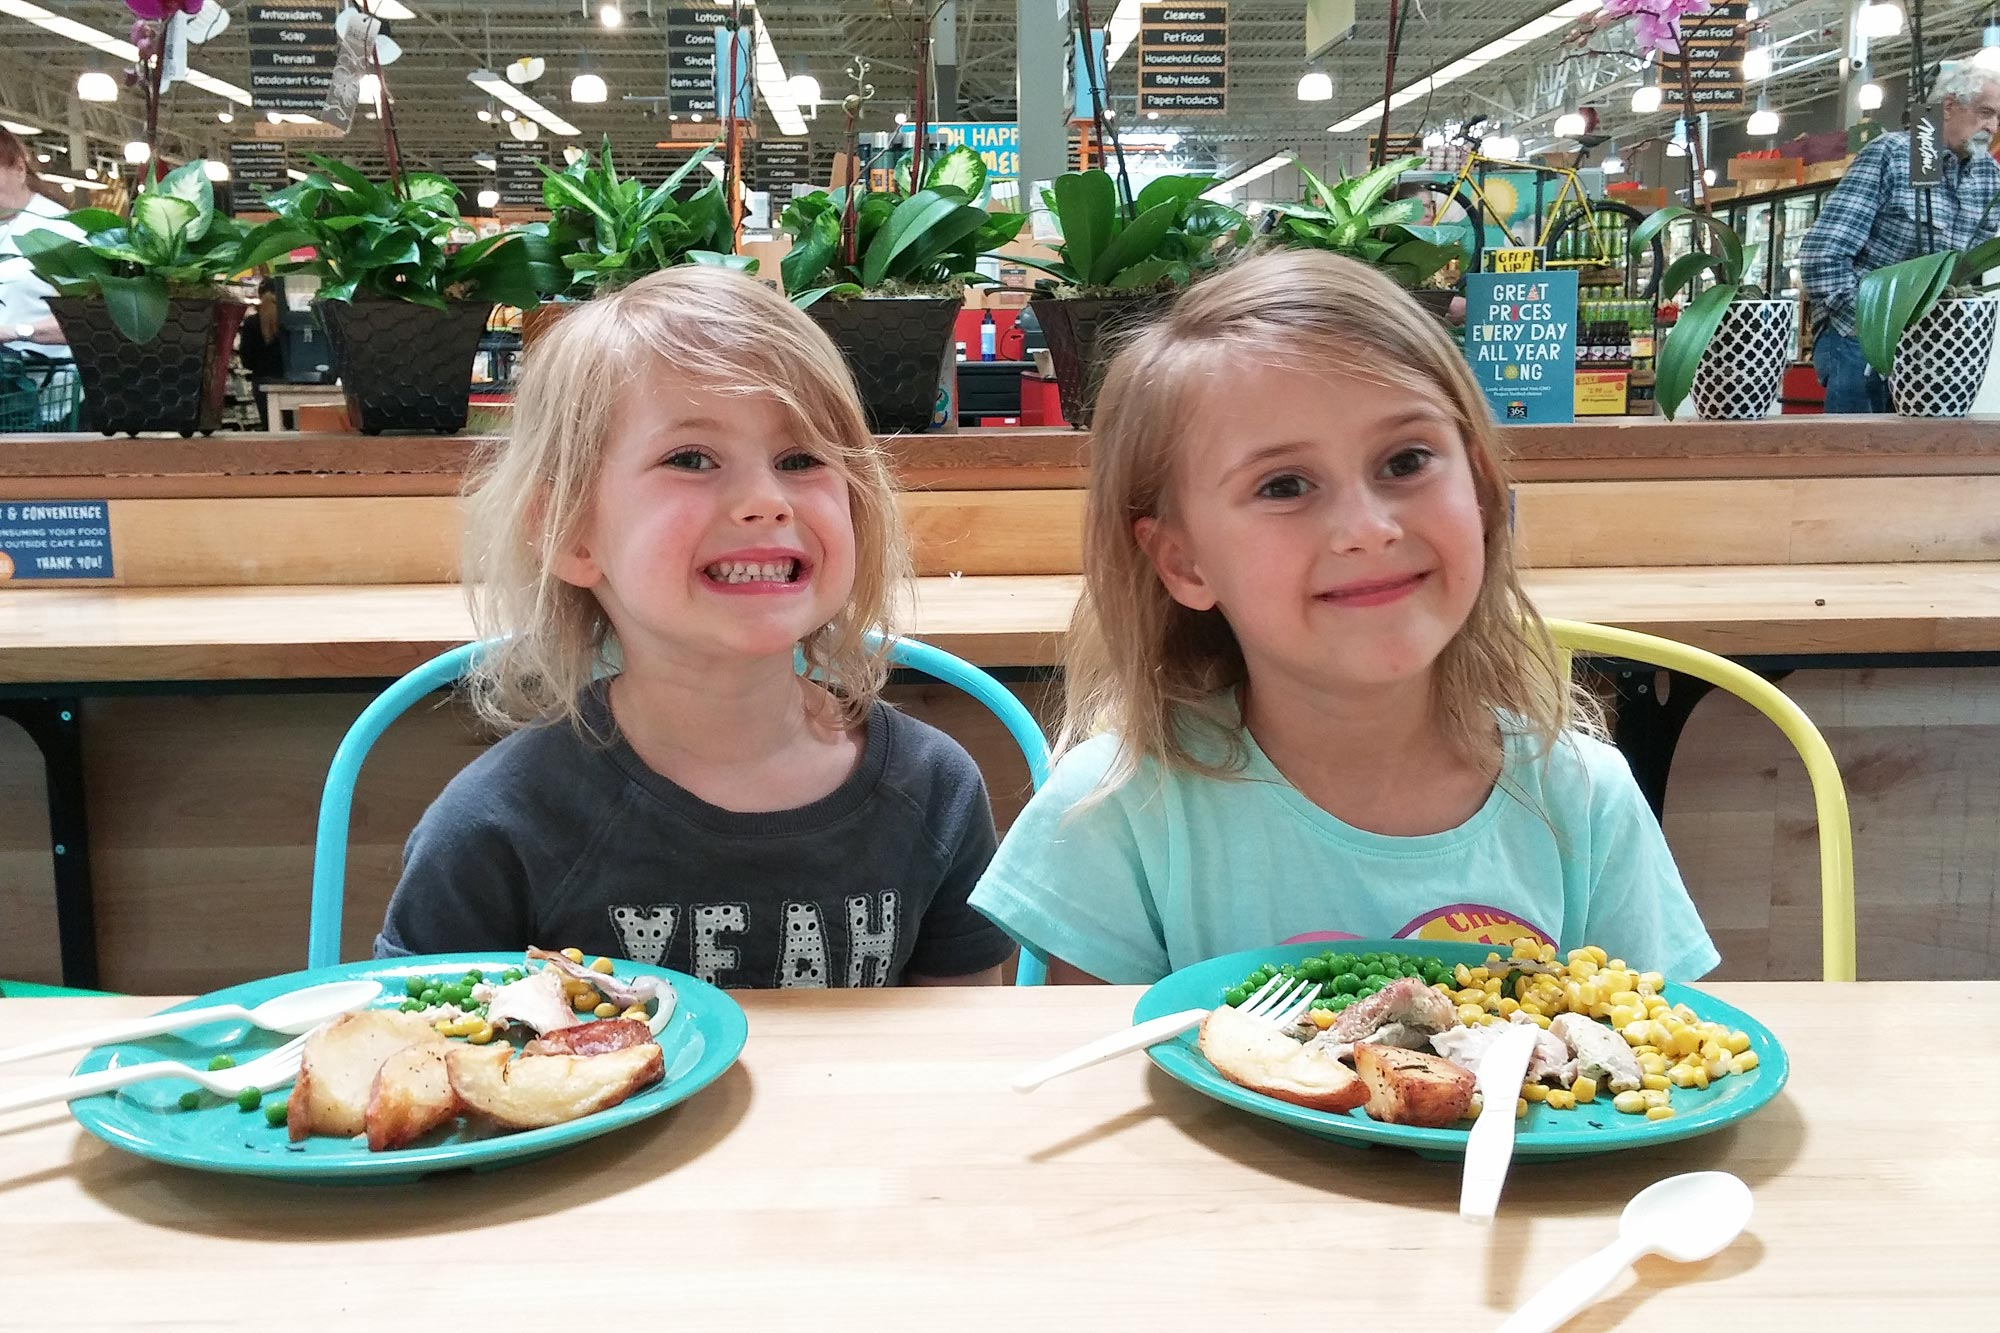 girls eating at Whole Foods